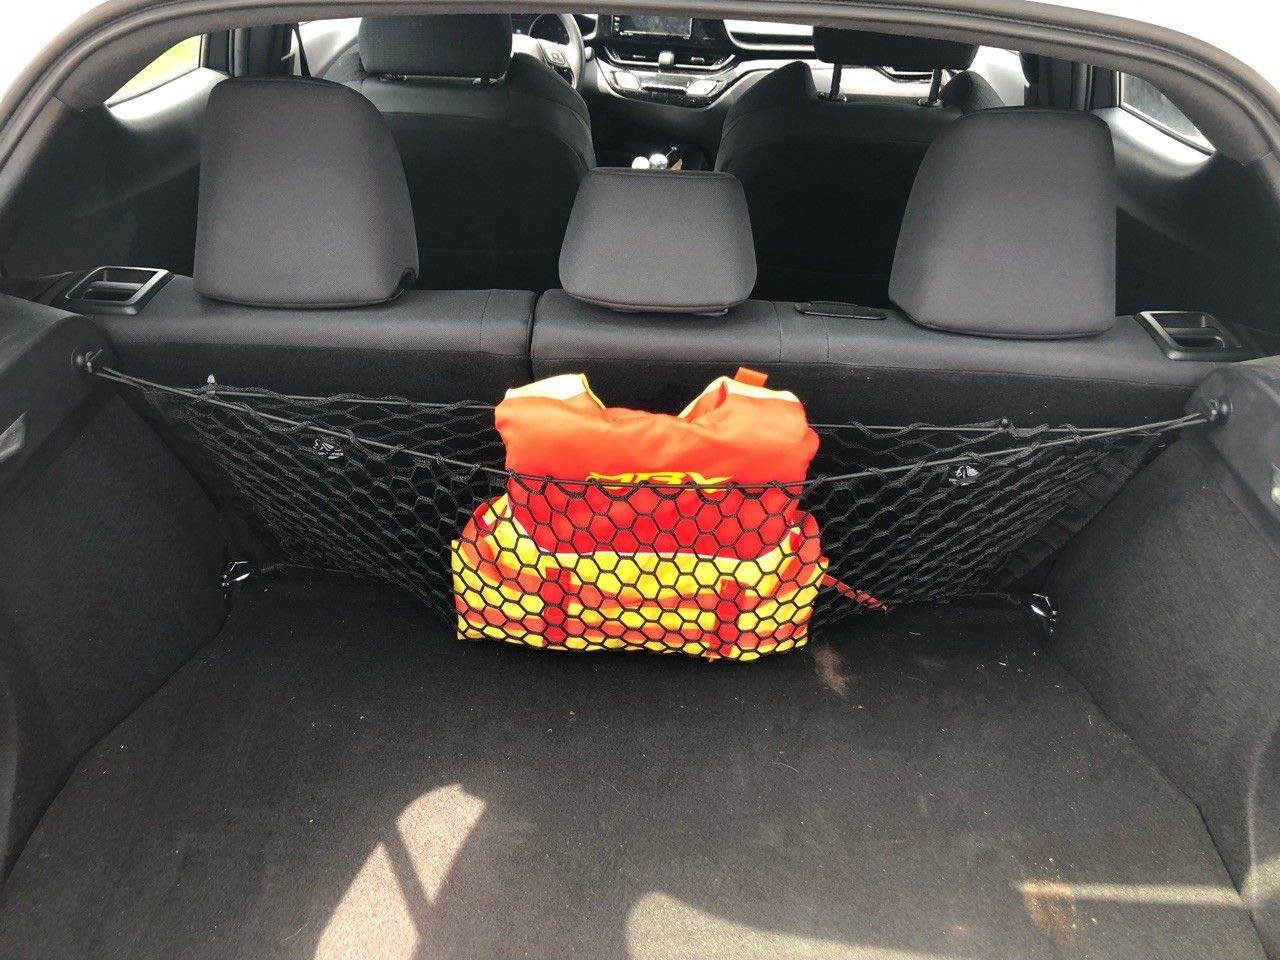 Envelope Type Trunk Cargo Storage Net for Toyota Camry 2018-2019